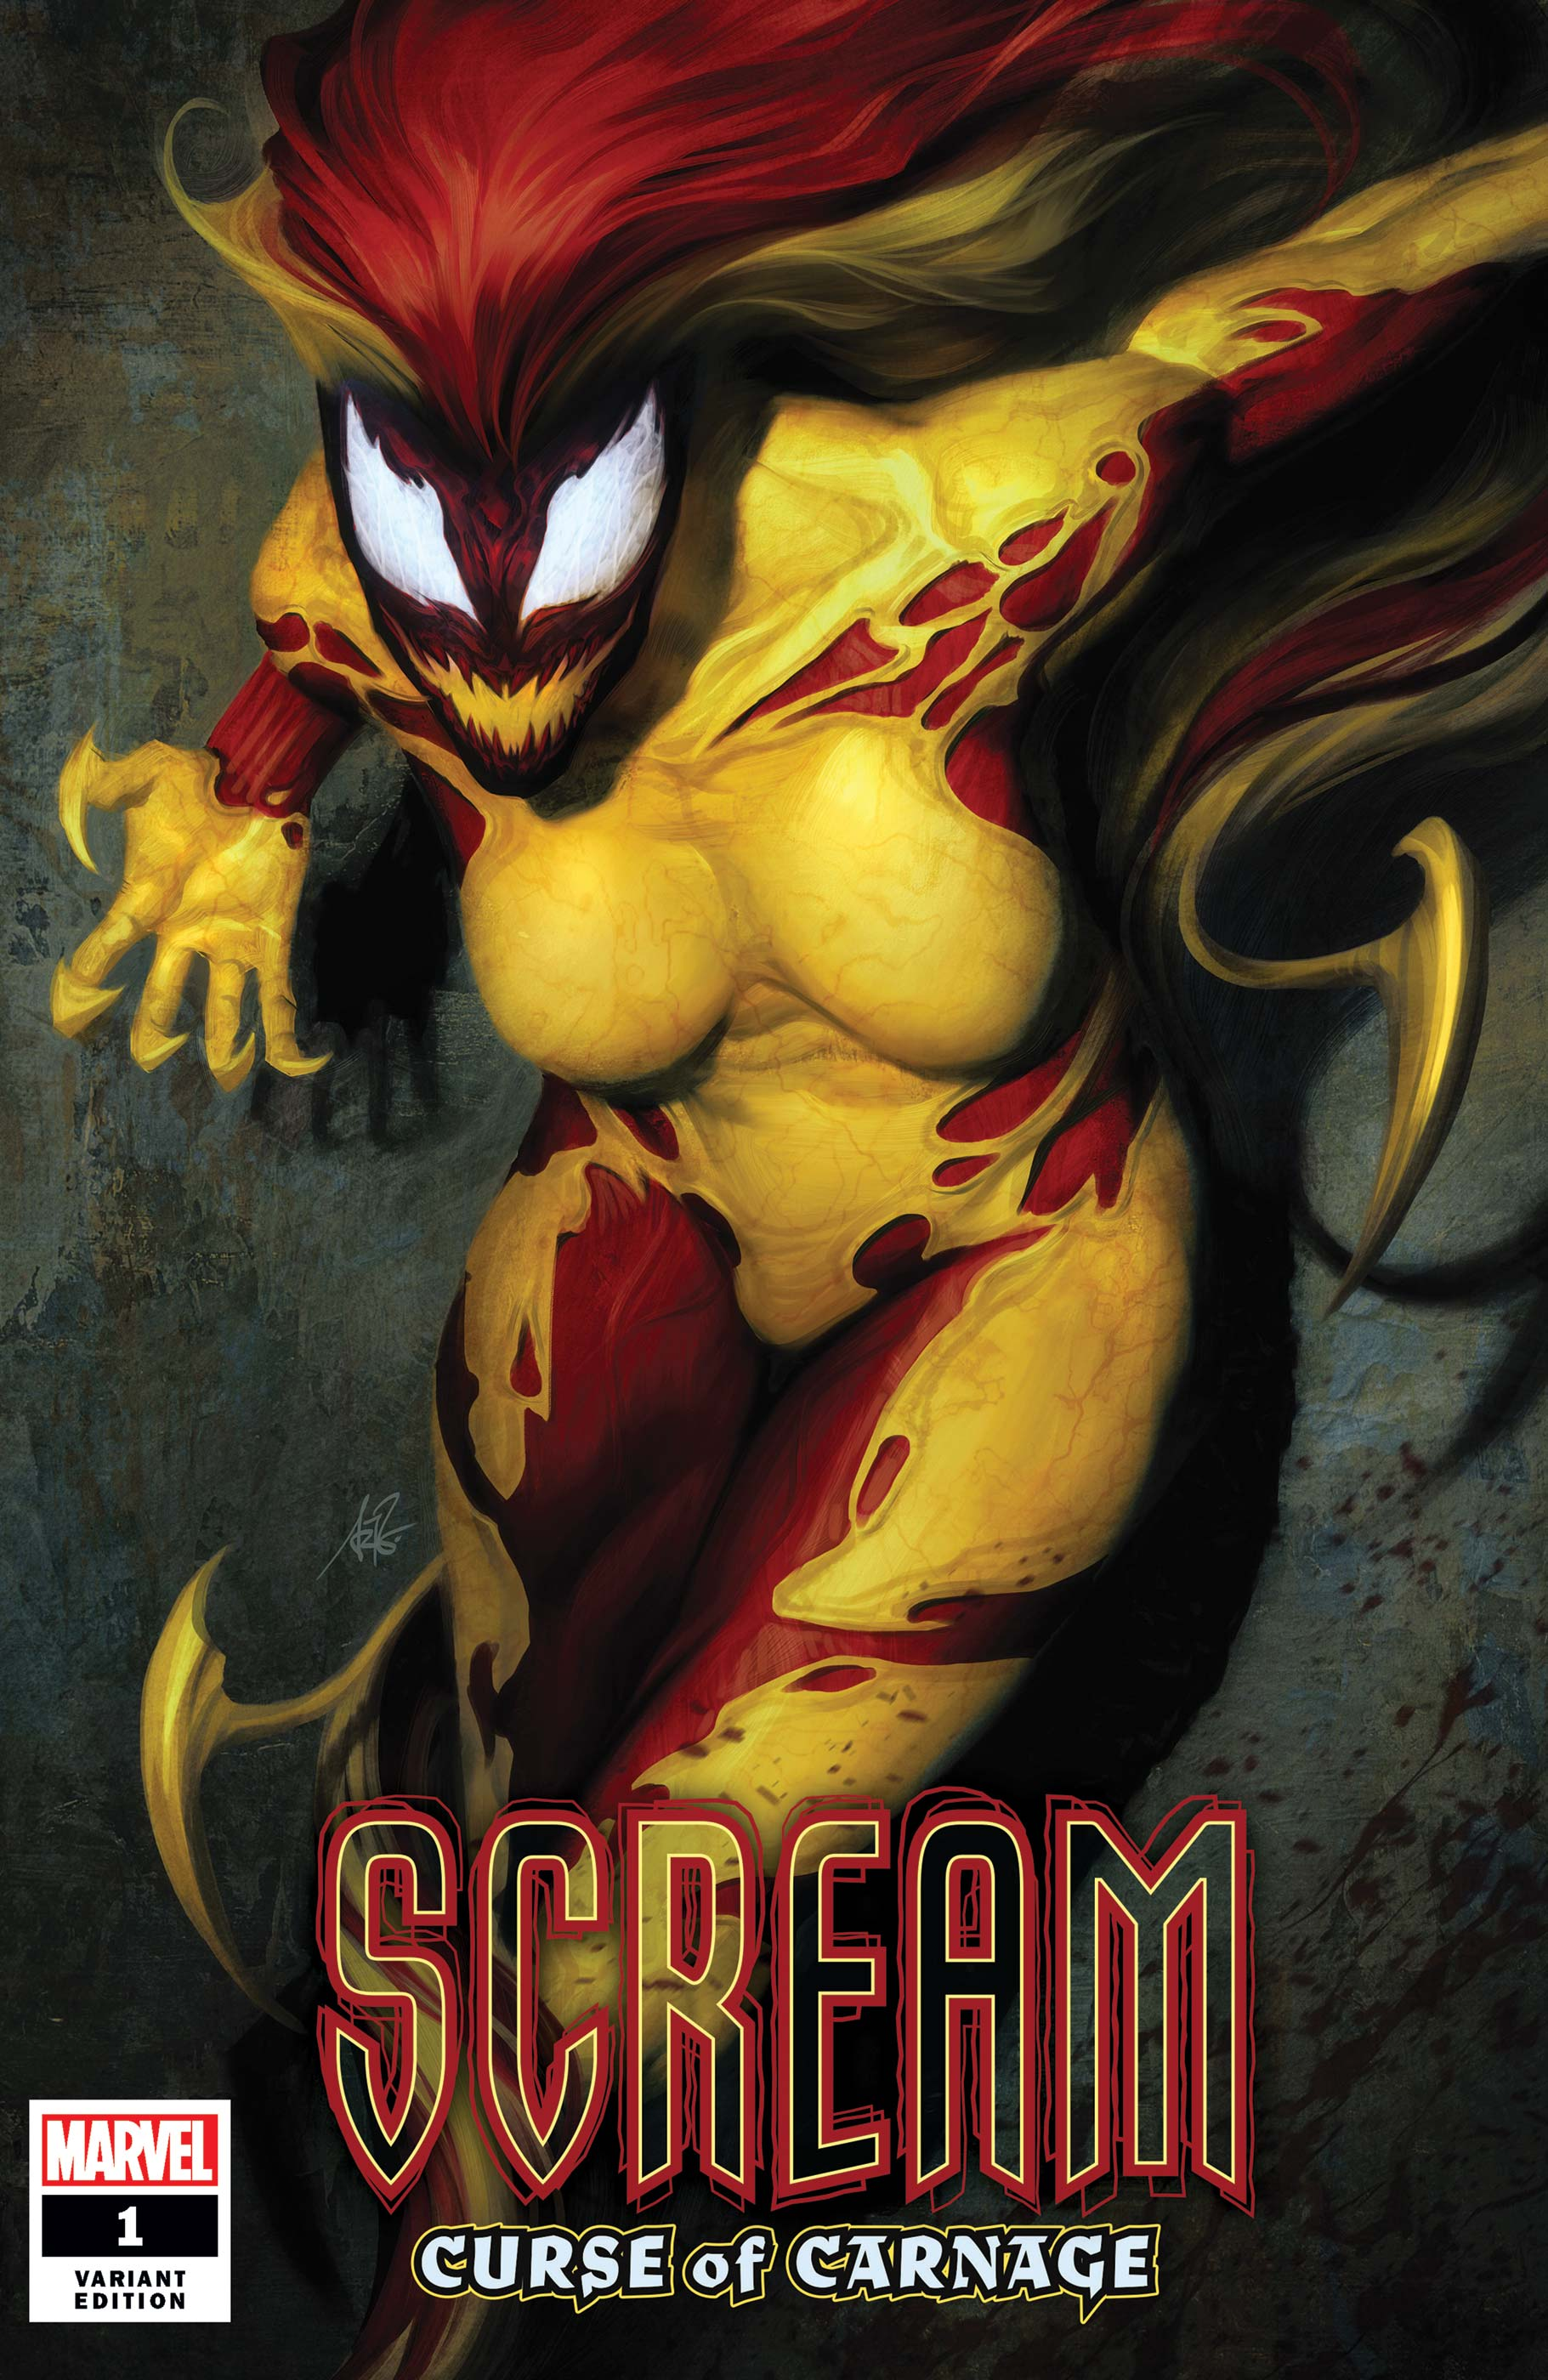 Scream: Curse of Carnage (2019) #1 (Variant)